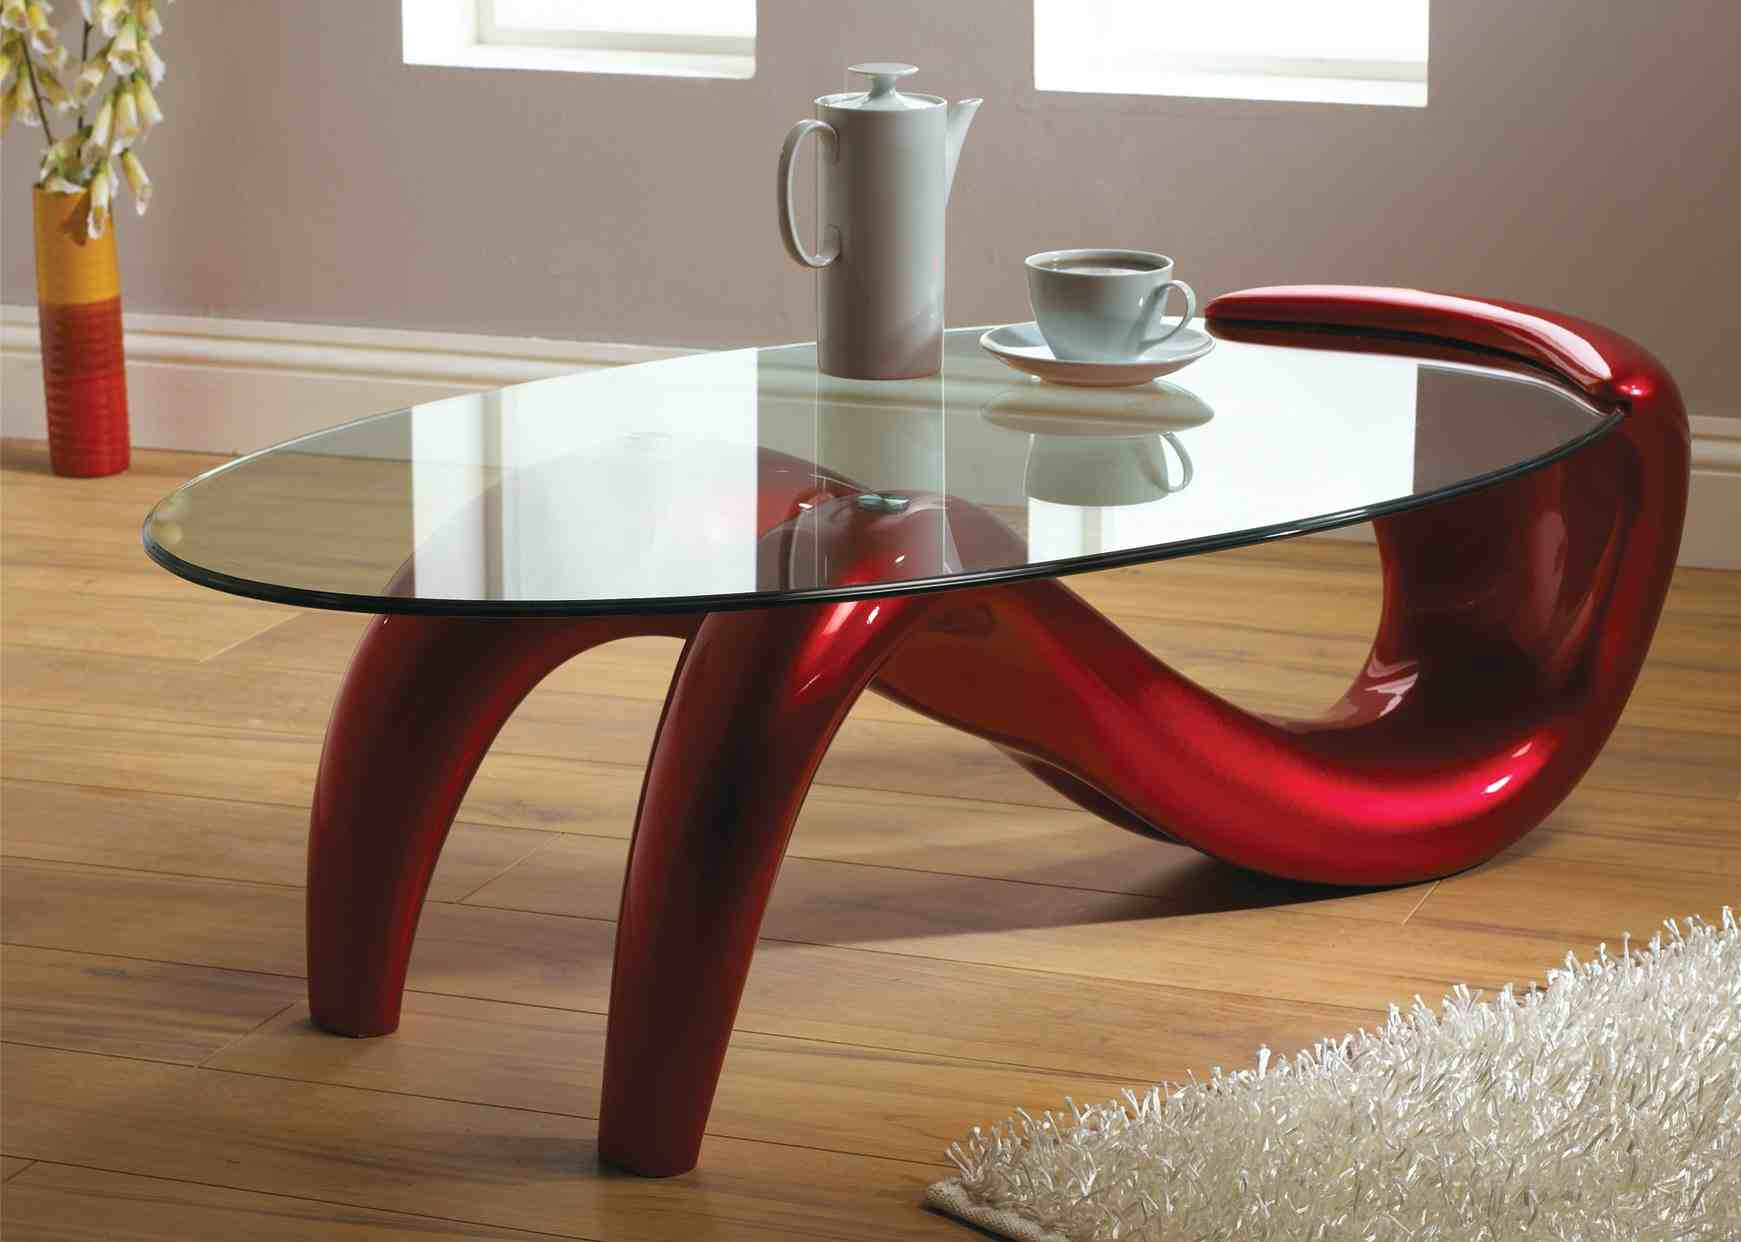 Modern glass coffee table design images photos pictures Designer glass coffee tables